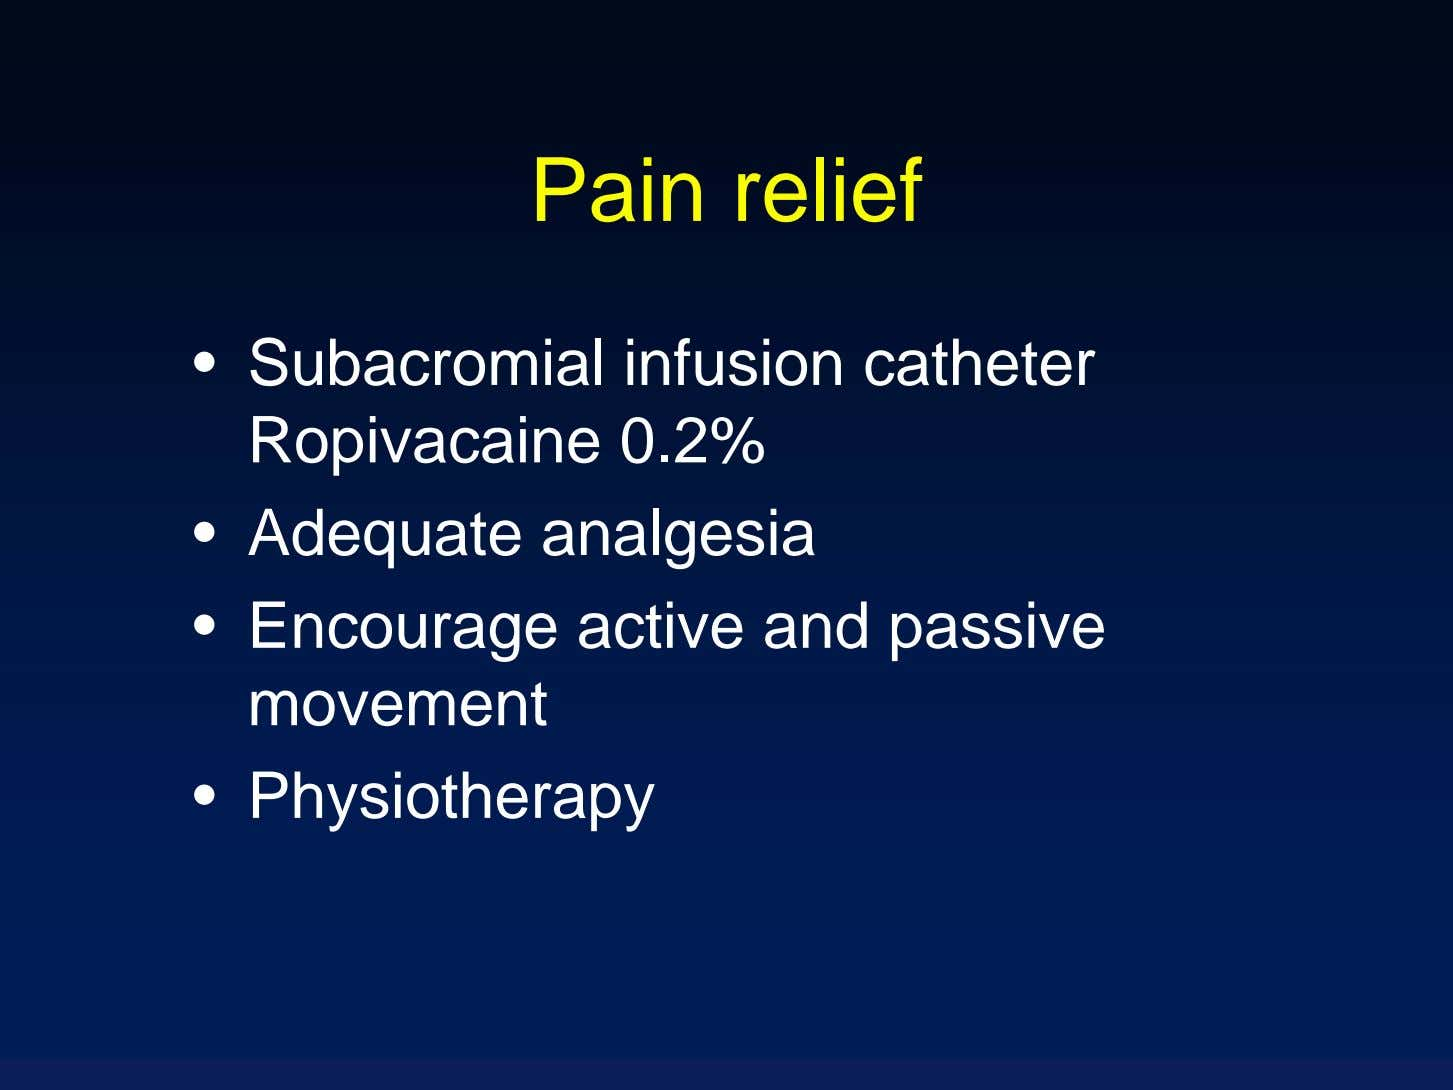 Pain relief • Subacromial infusion catheter Ropivacaine 0.2% • Adequate analgesia • Encourage active and